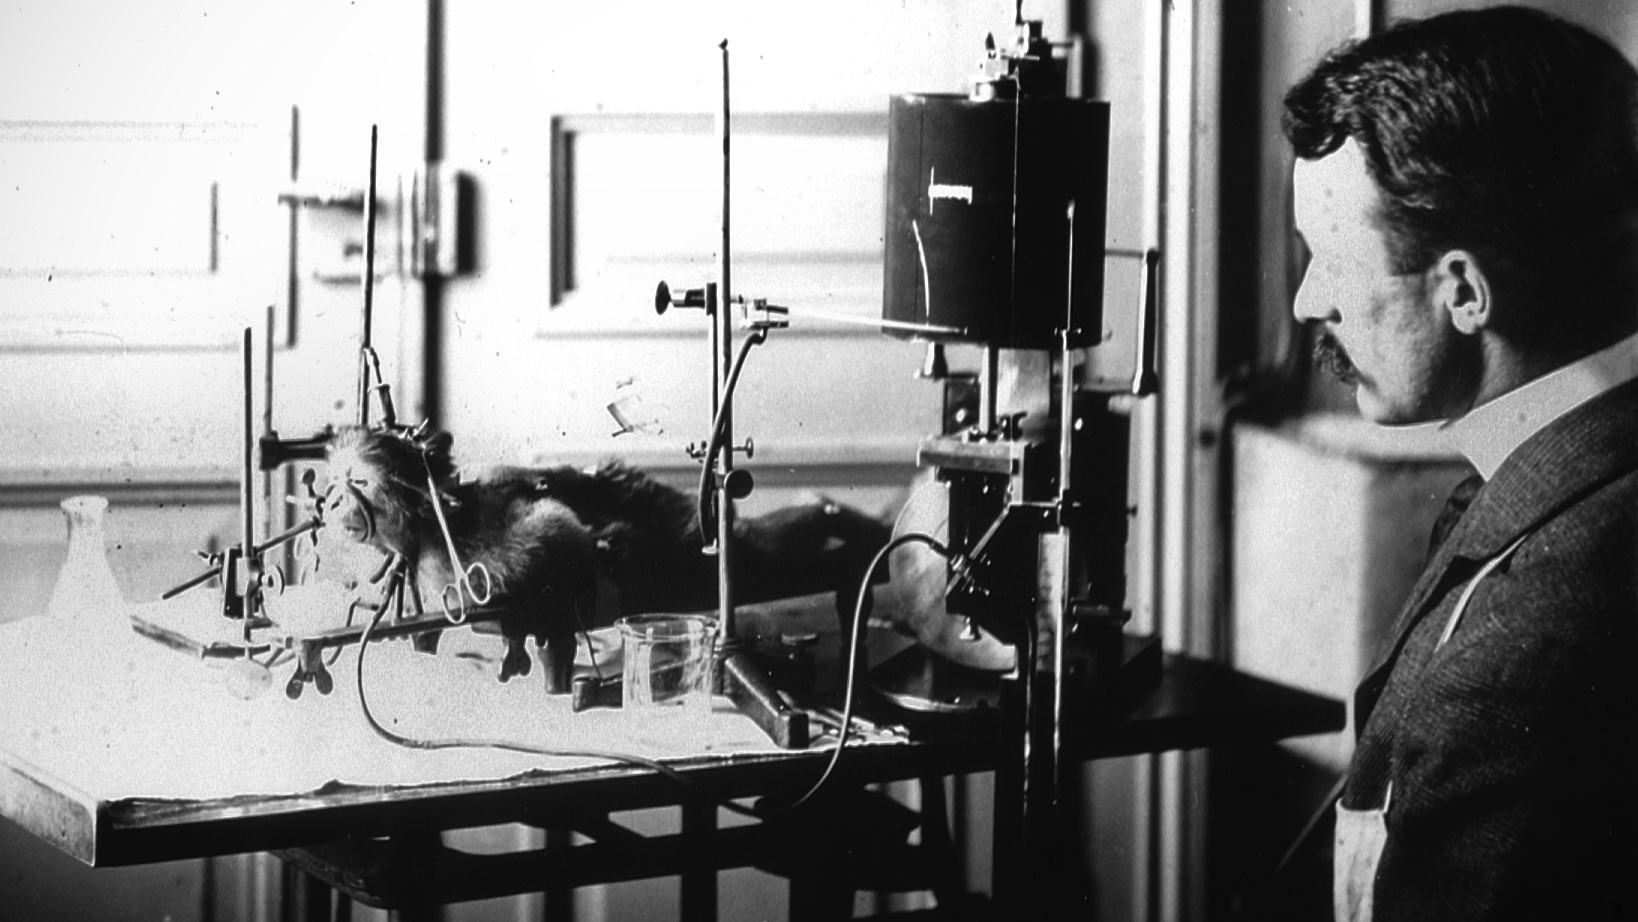 Figure 1: Harvey Cushing studied physiological effects of increased intracranial tension (Cushing reflex) in the Hunterian laboratory on primates at the Johns Hopkins Hospital (circa 1904).